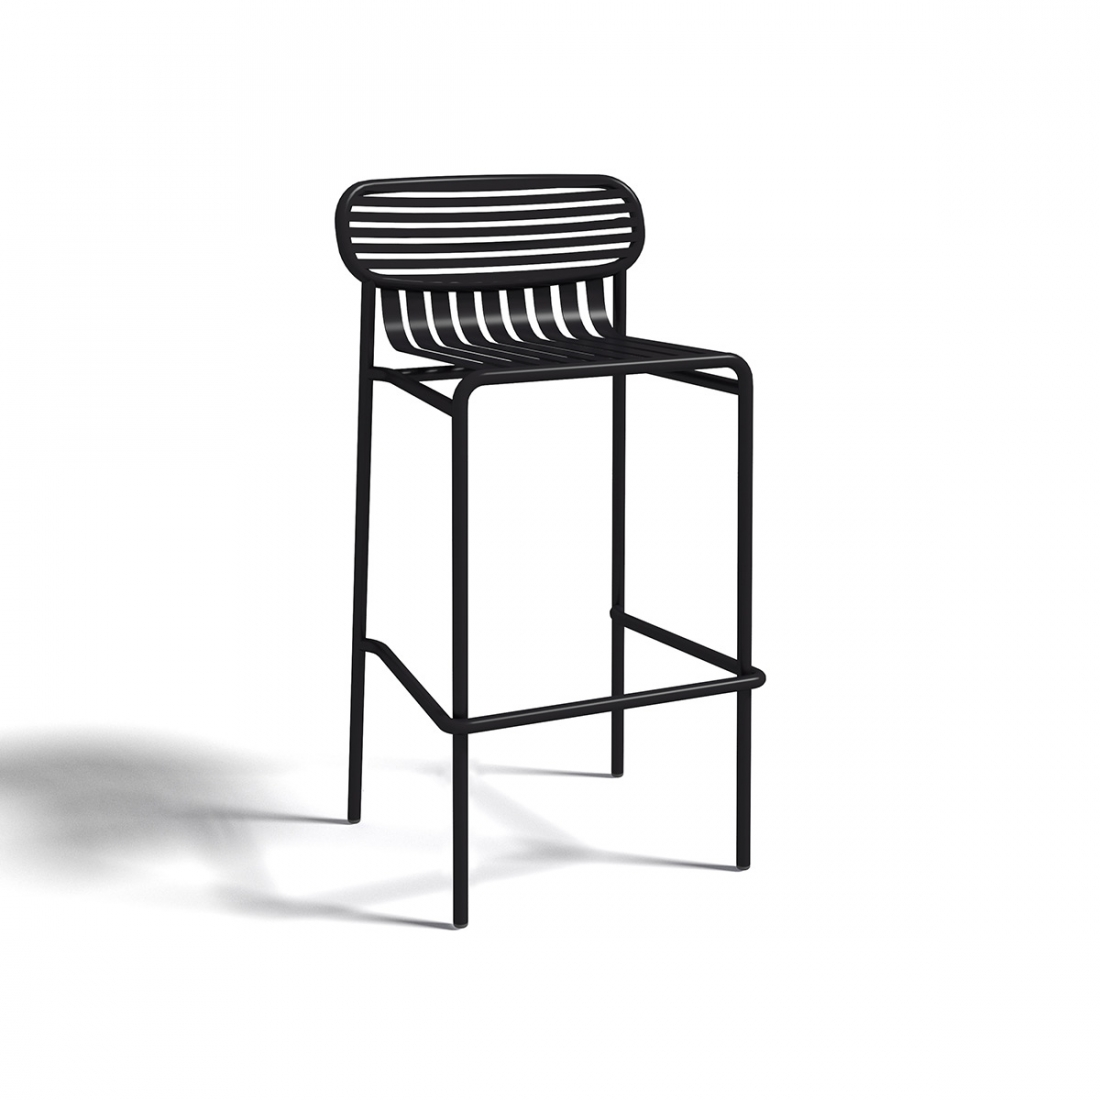 Tabouret de bar d ext rieur design week end par oxyo for Tabouret de bar exterieur